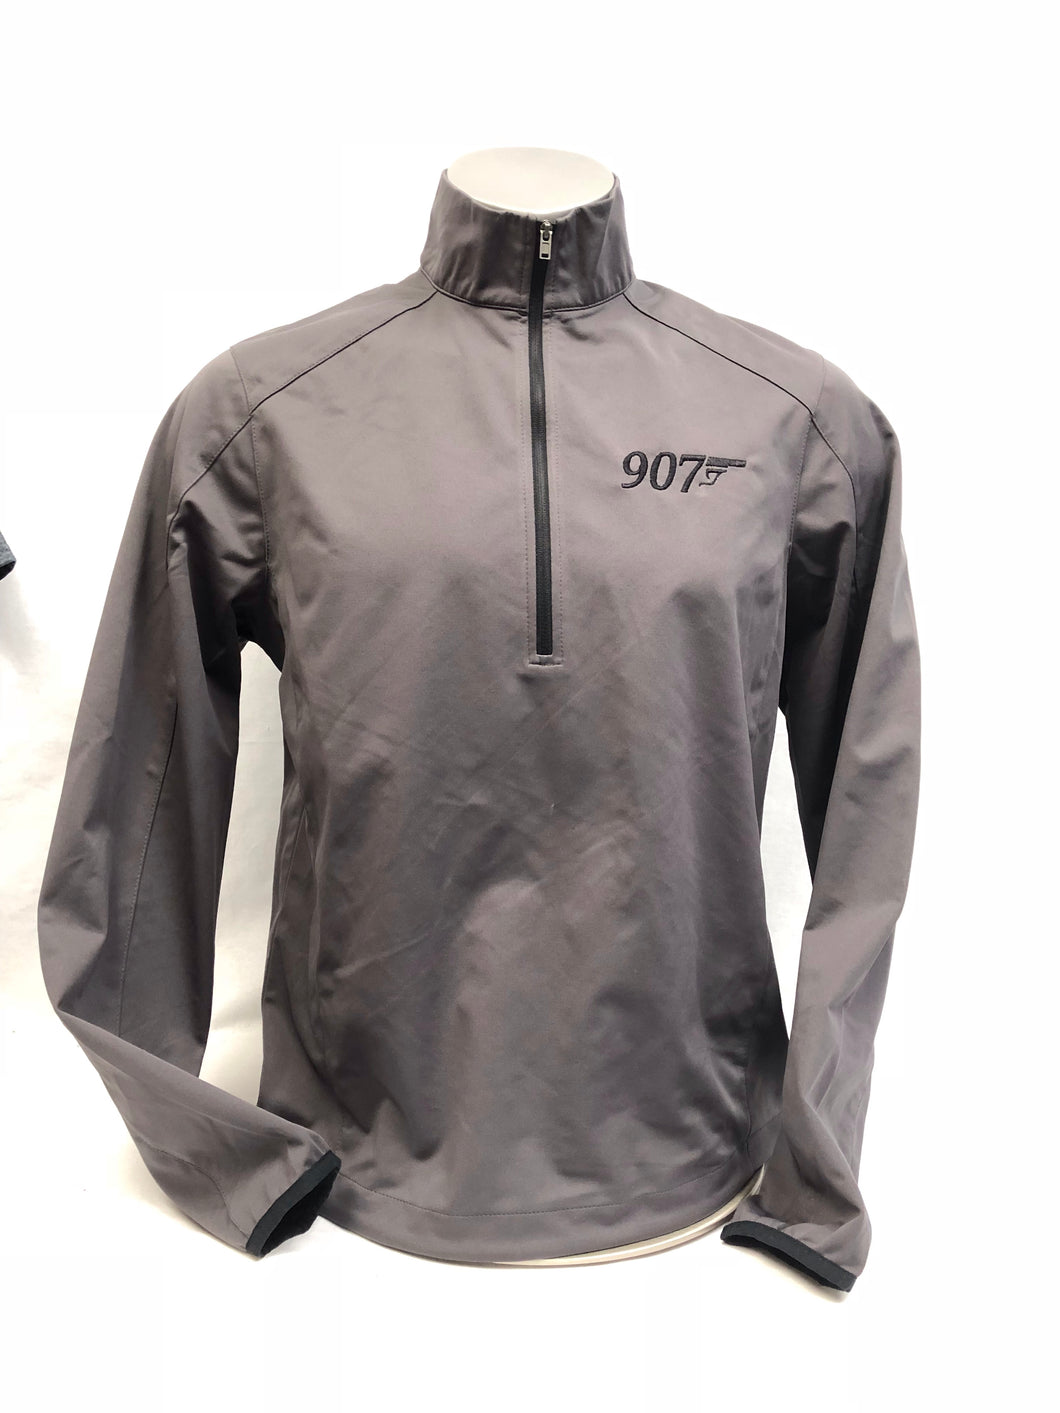 907 Gun - 1/4 Zip Soft-shell Jacket